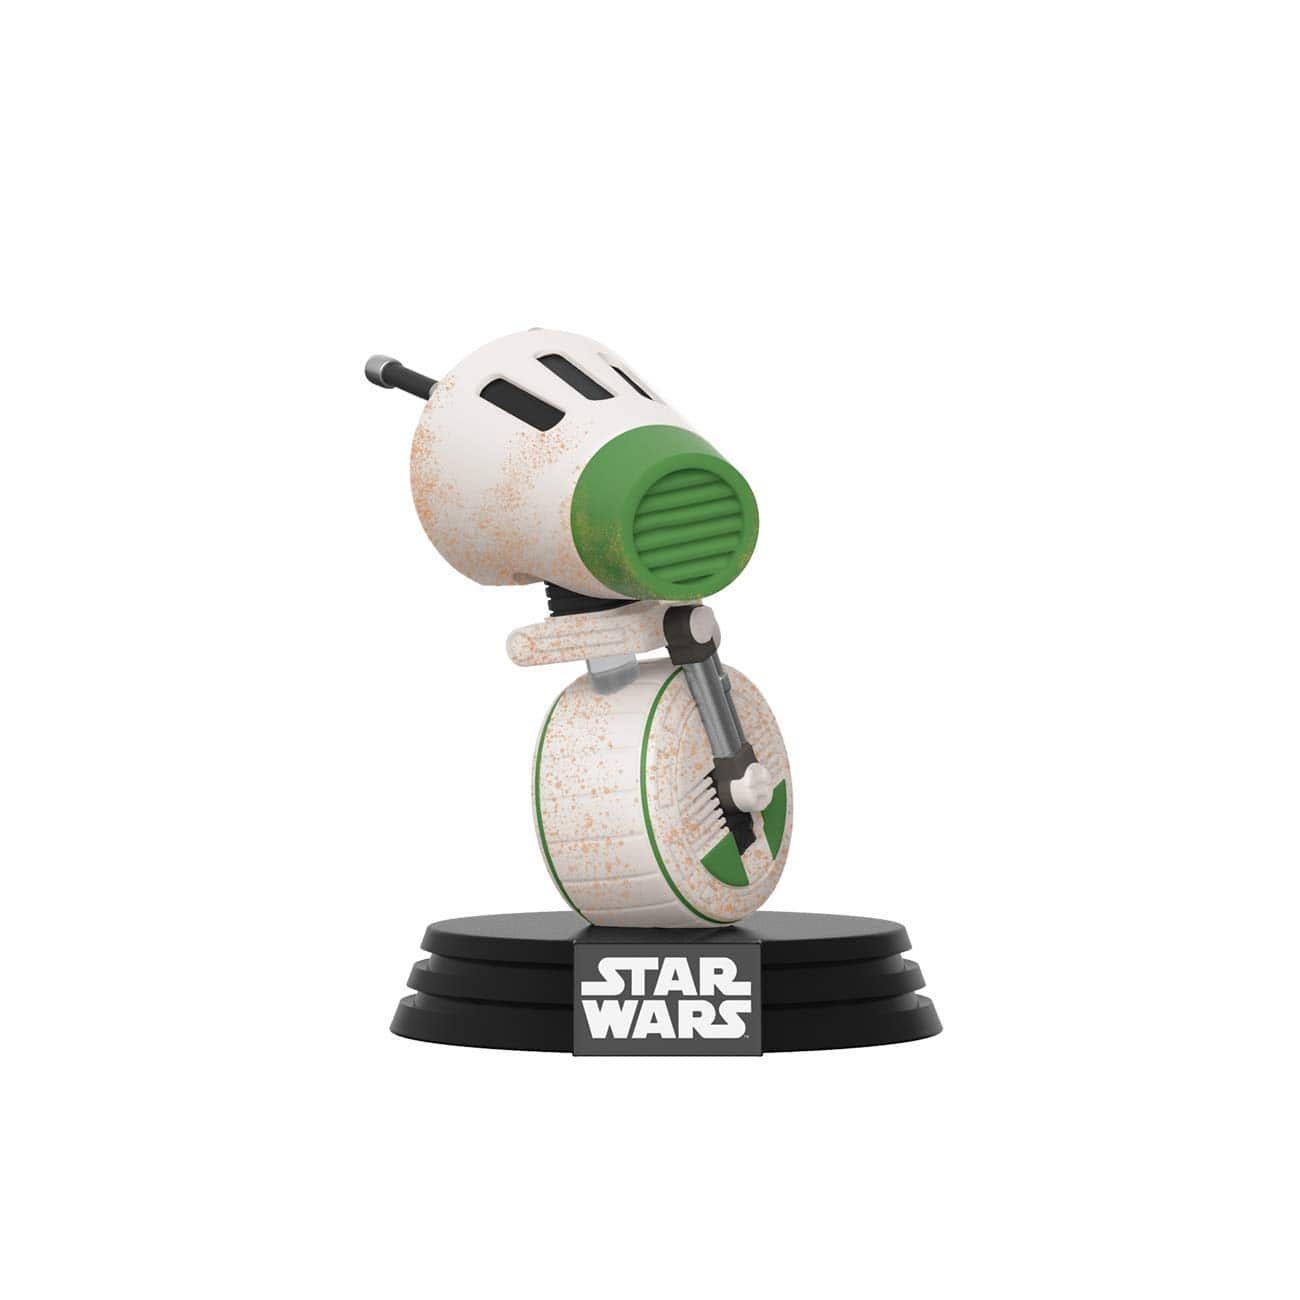 Funko Pop! Star Wars: Episode 9, Rise of Skywalker - D-O $6.25 @ Amazon + FS (Prime)